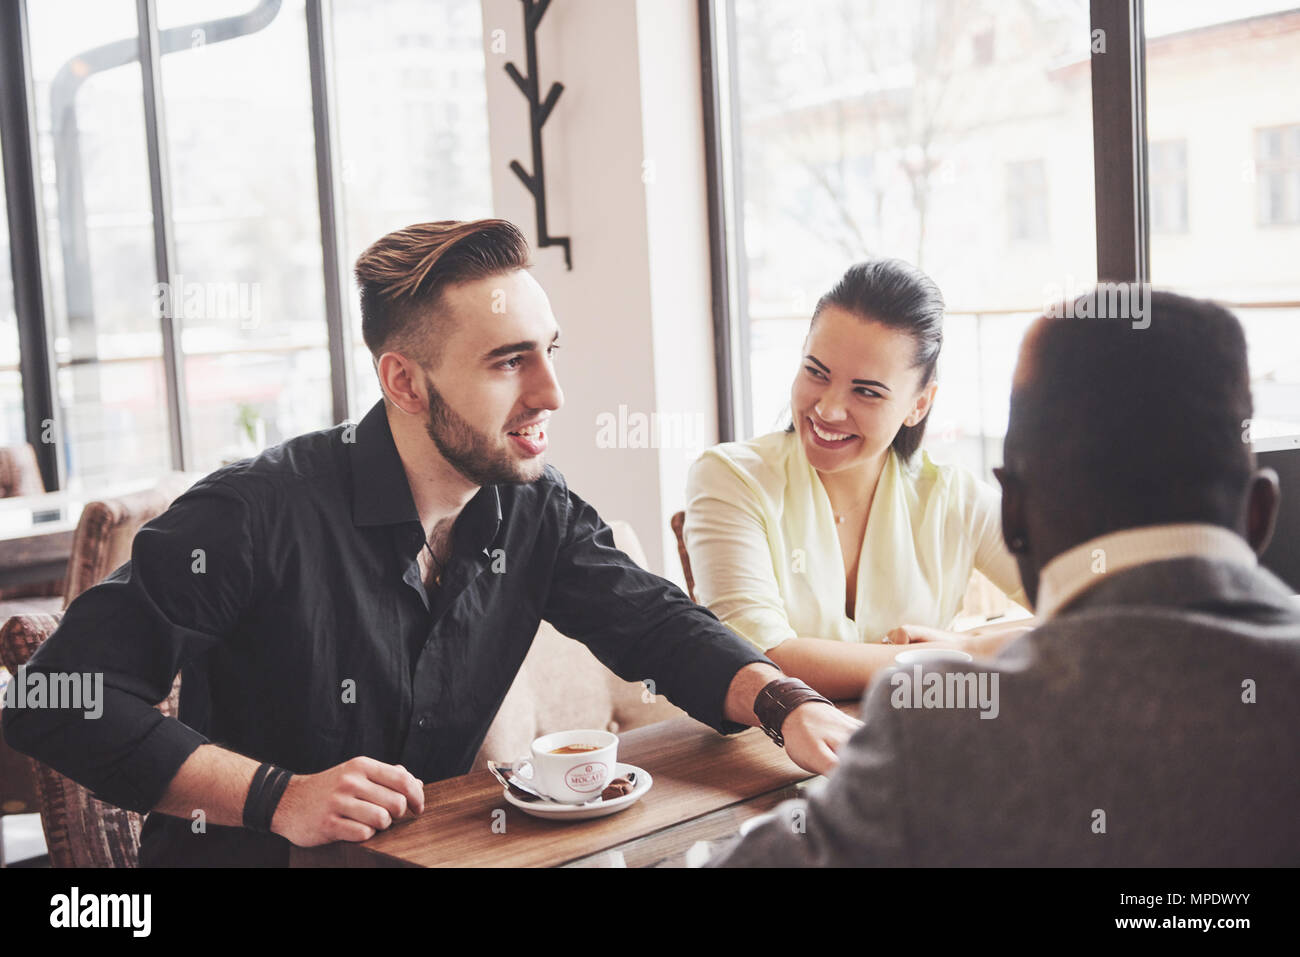 Startup Diversity Teamwork Brainstorming Meeting Concept. Business Team Coworkers Sharing World Economy Report Document Laptop.People Working Planning Start Up.Group Young Hipsters Discussing Cafe - Stock Image